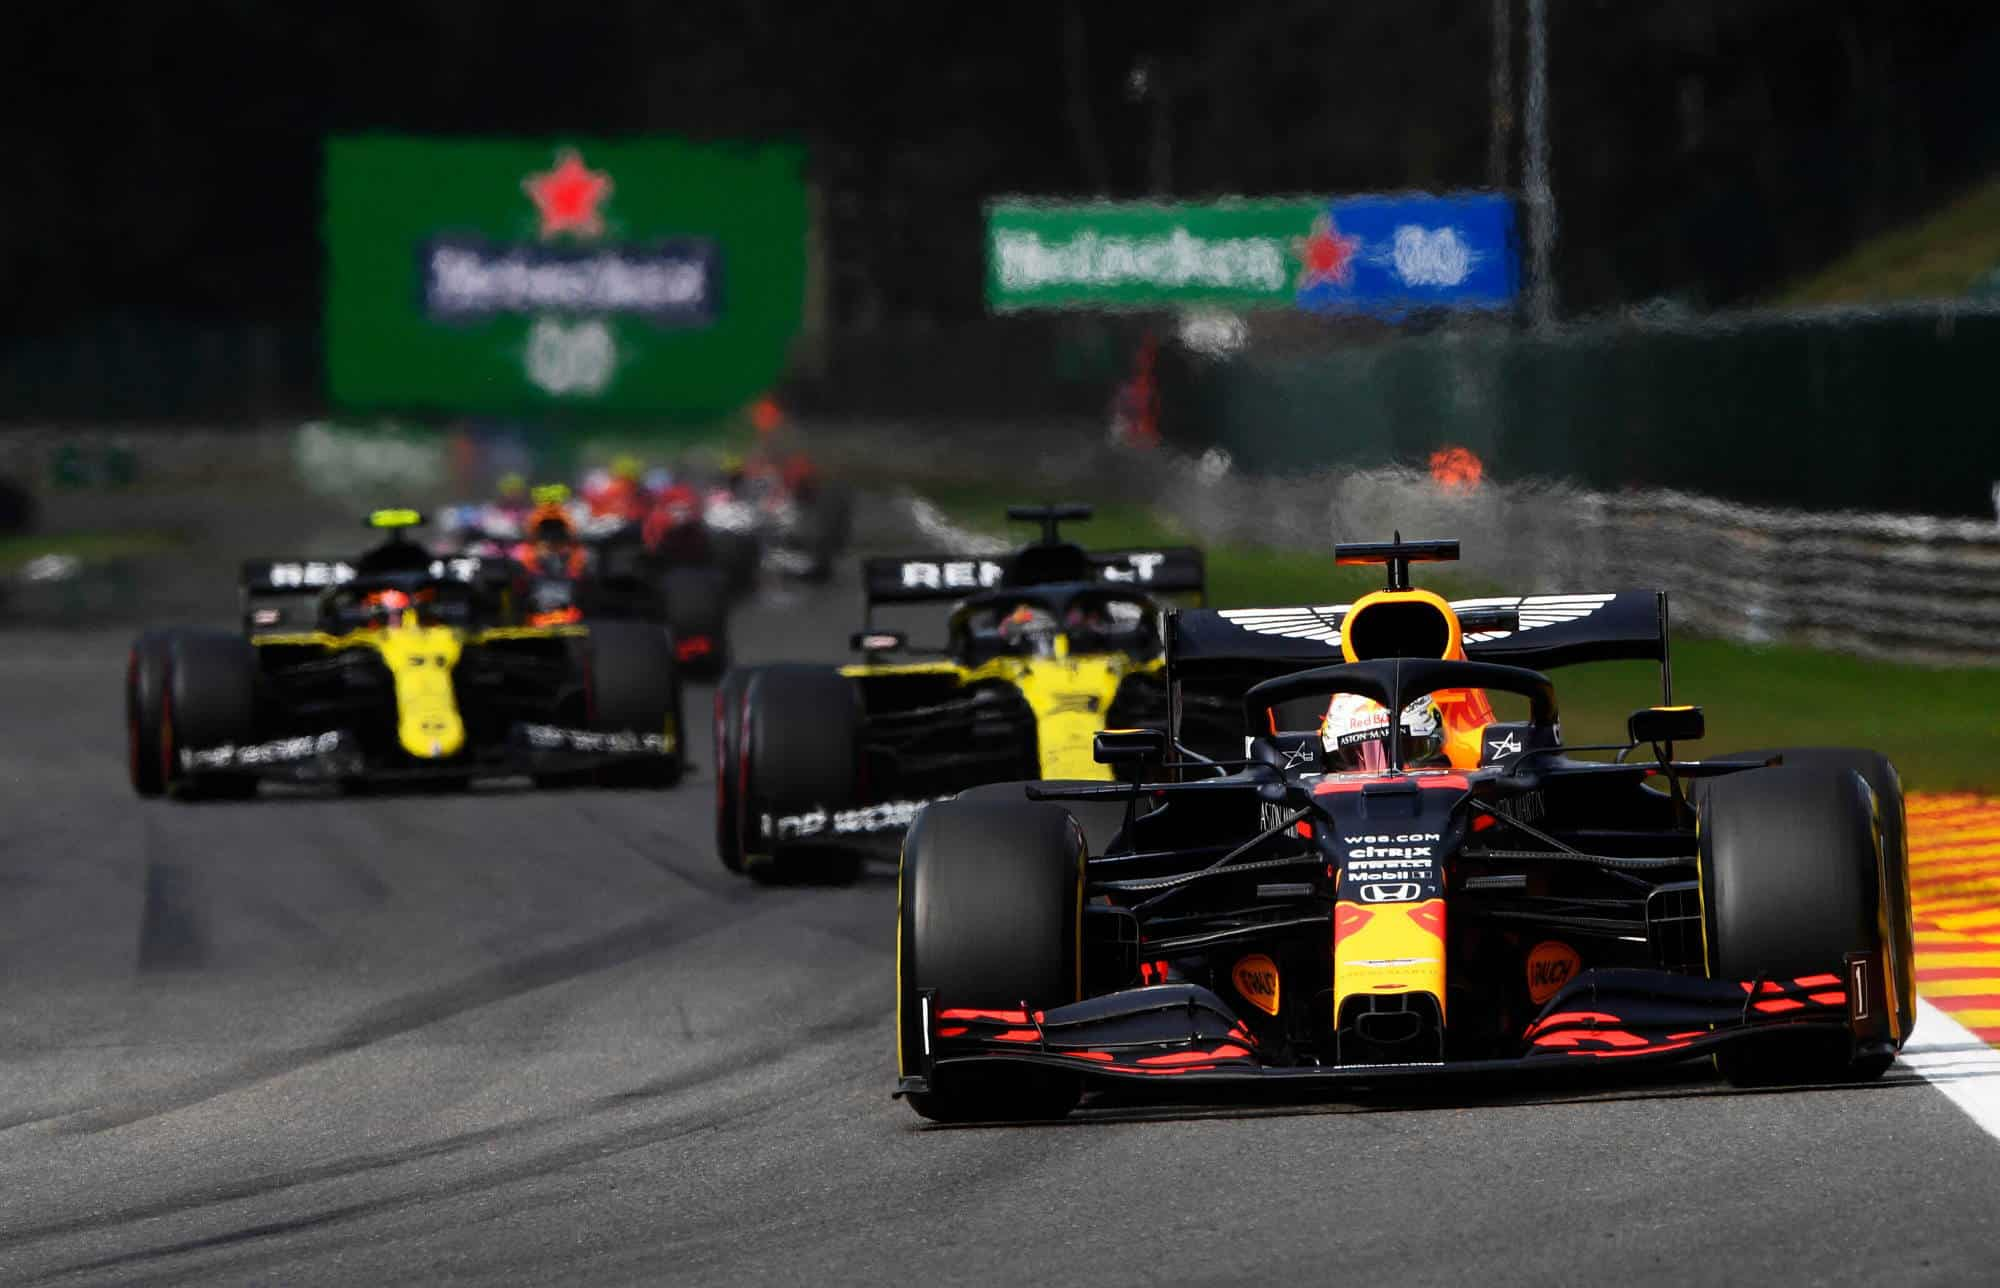 2020 Belgian GP Verstappen leads Ricciardo Ocon Photo Red Bull